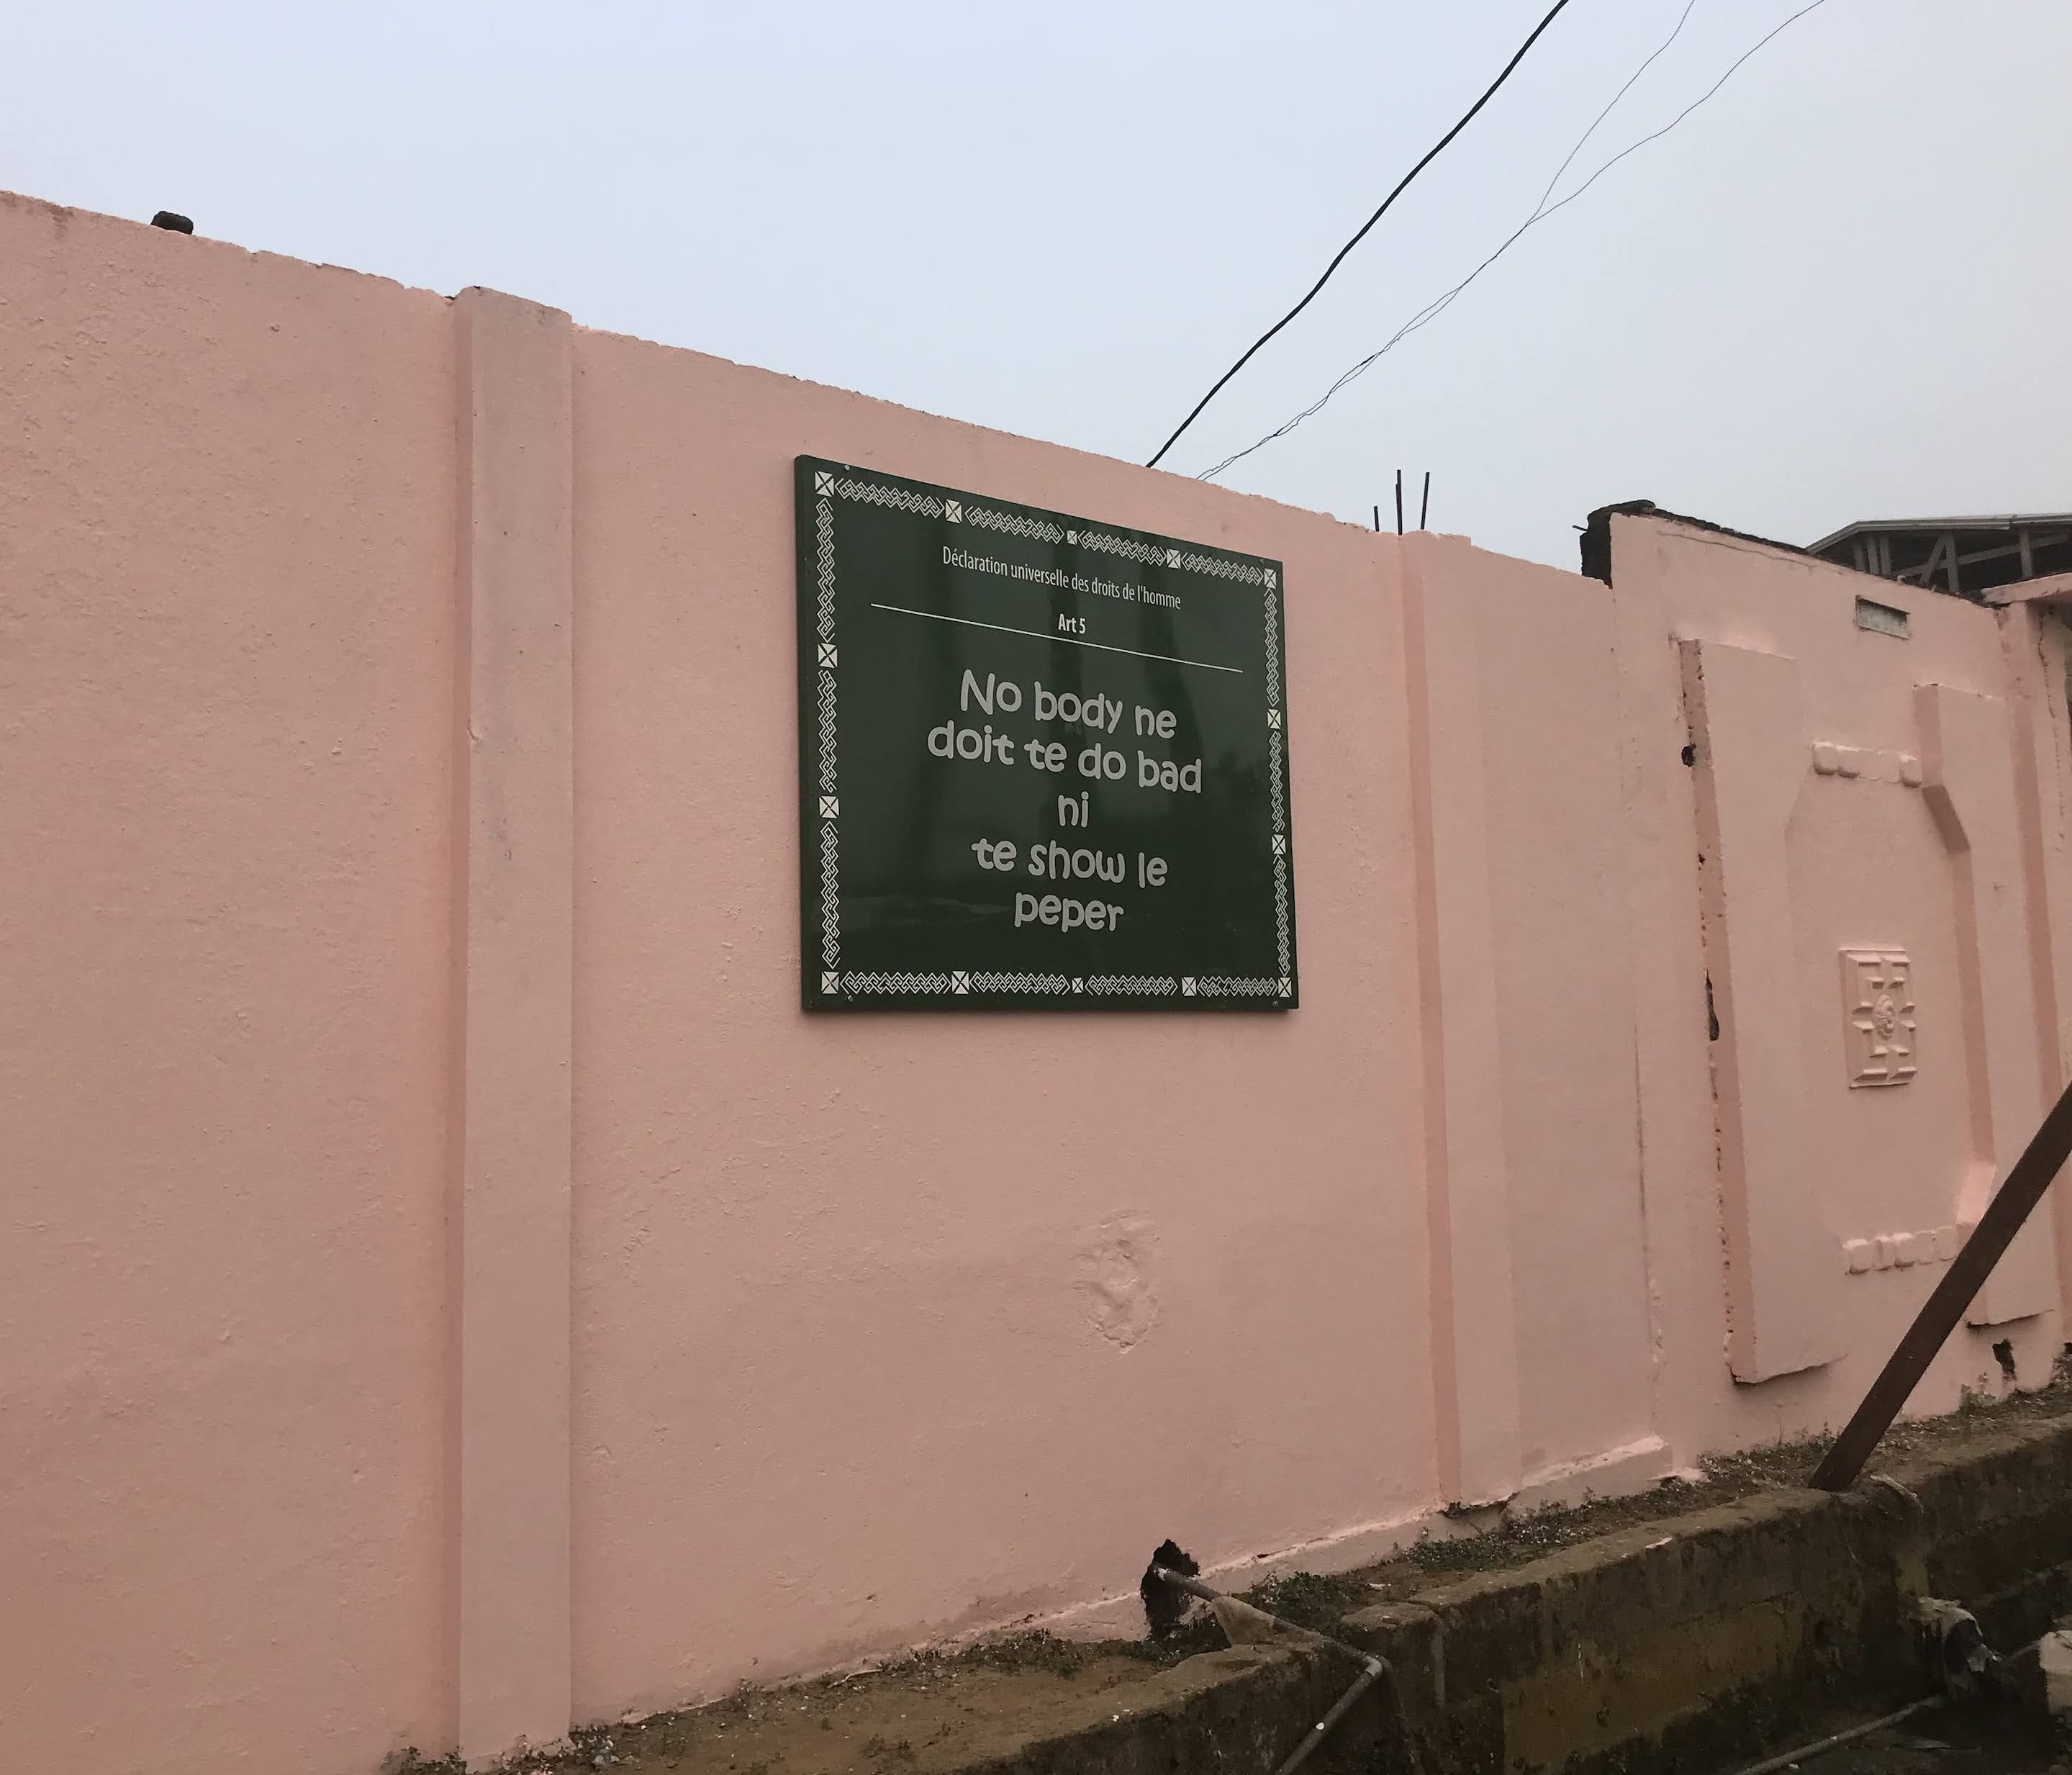 A salmon pink outdoor wall, raised upon two layers of dark bricks, featuring a black and white sign with French words.